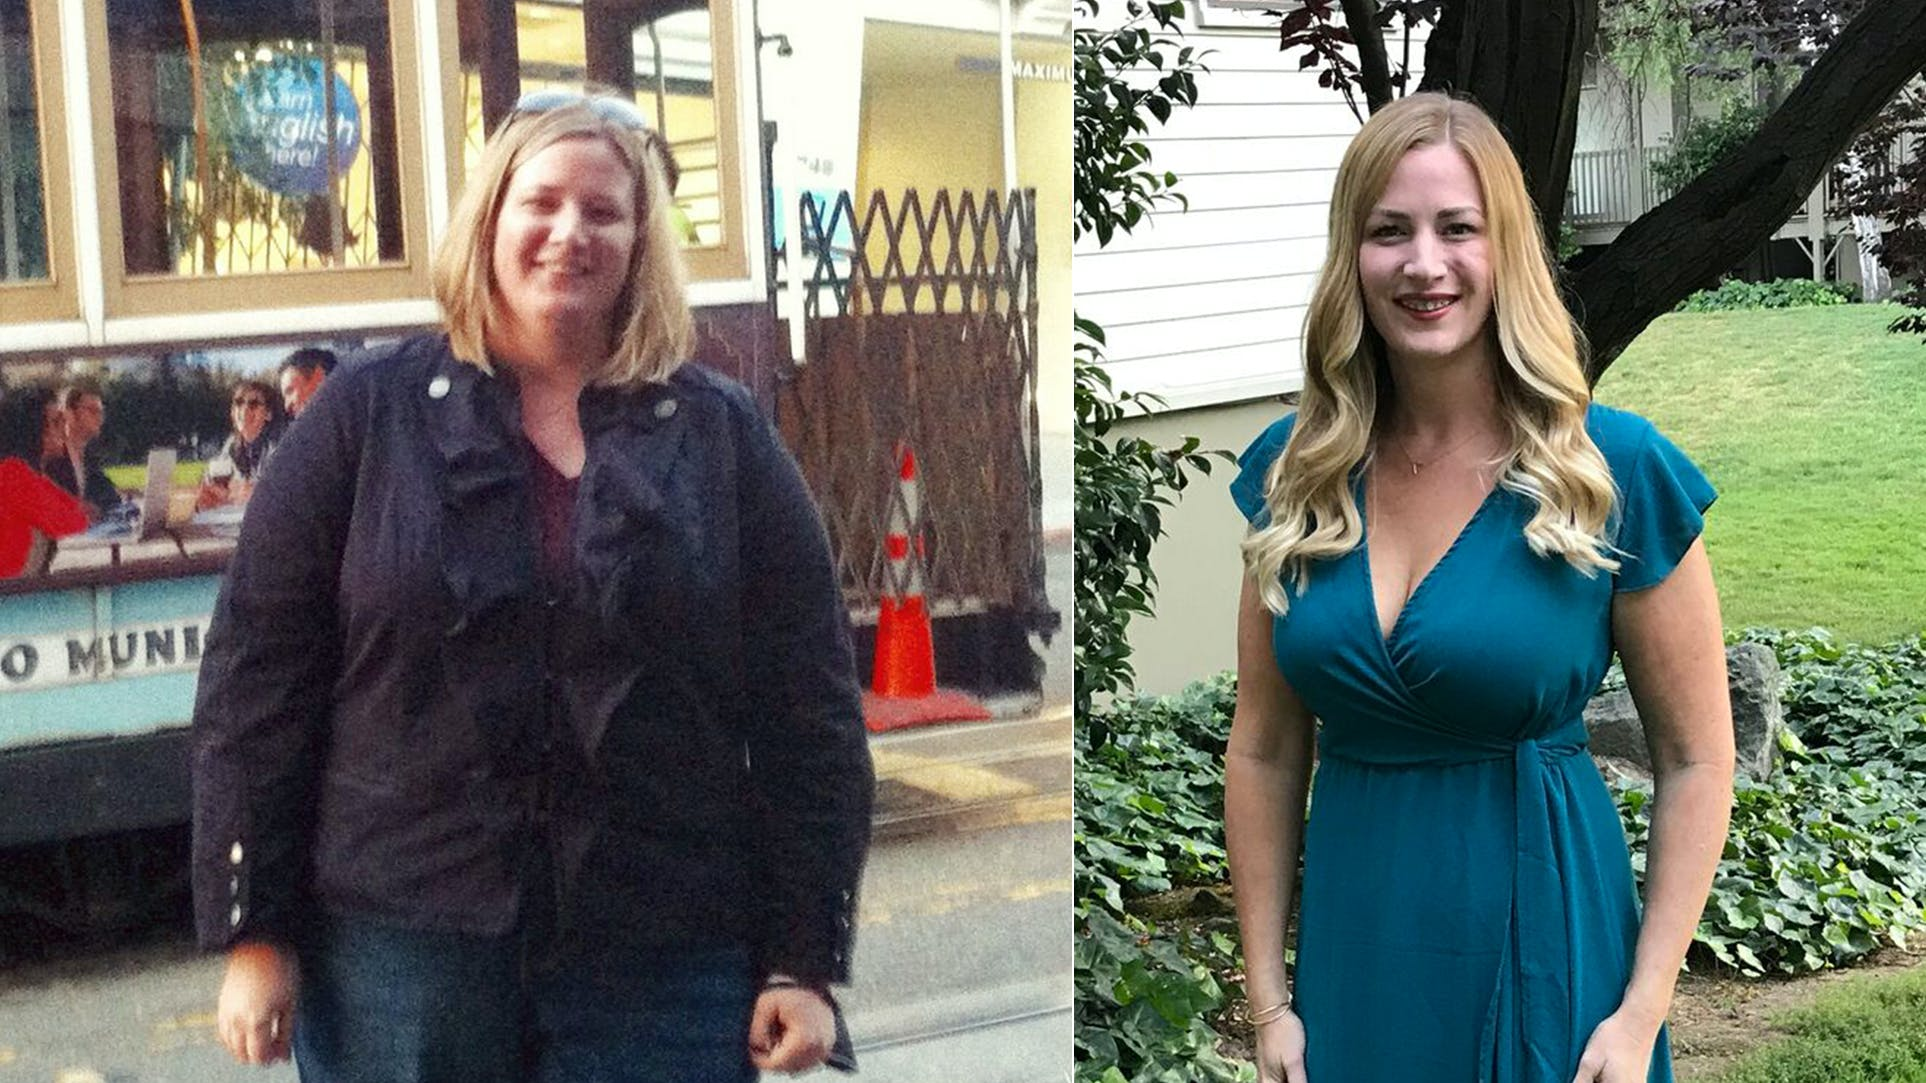 Losing 120 pounds with keto and the right mindset